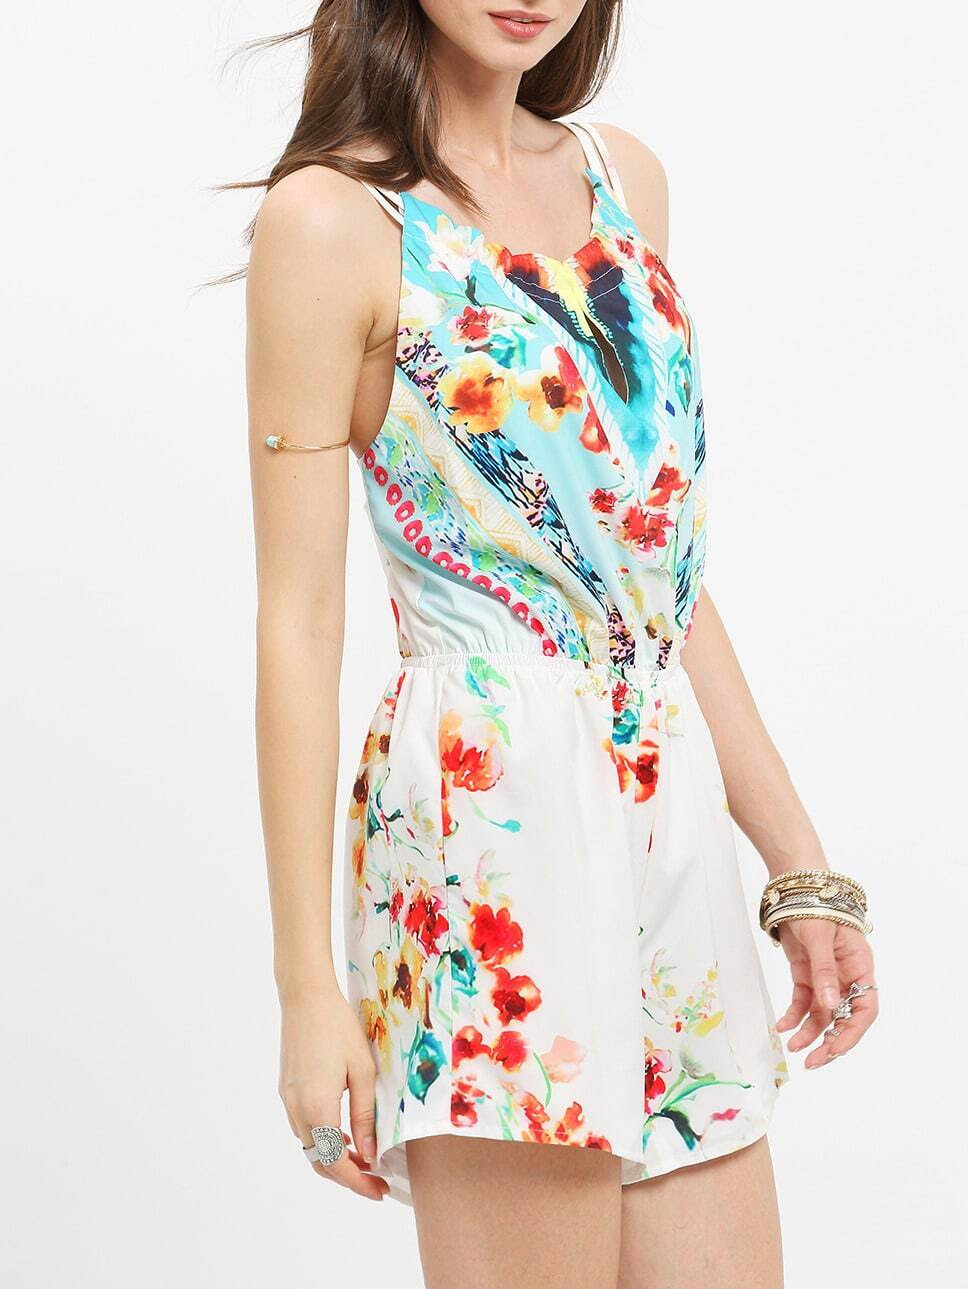 Spaghetti Strap Backless Floral Sleeveless Playsuits